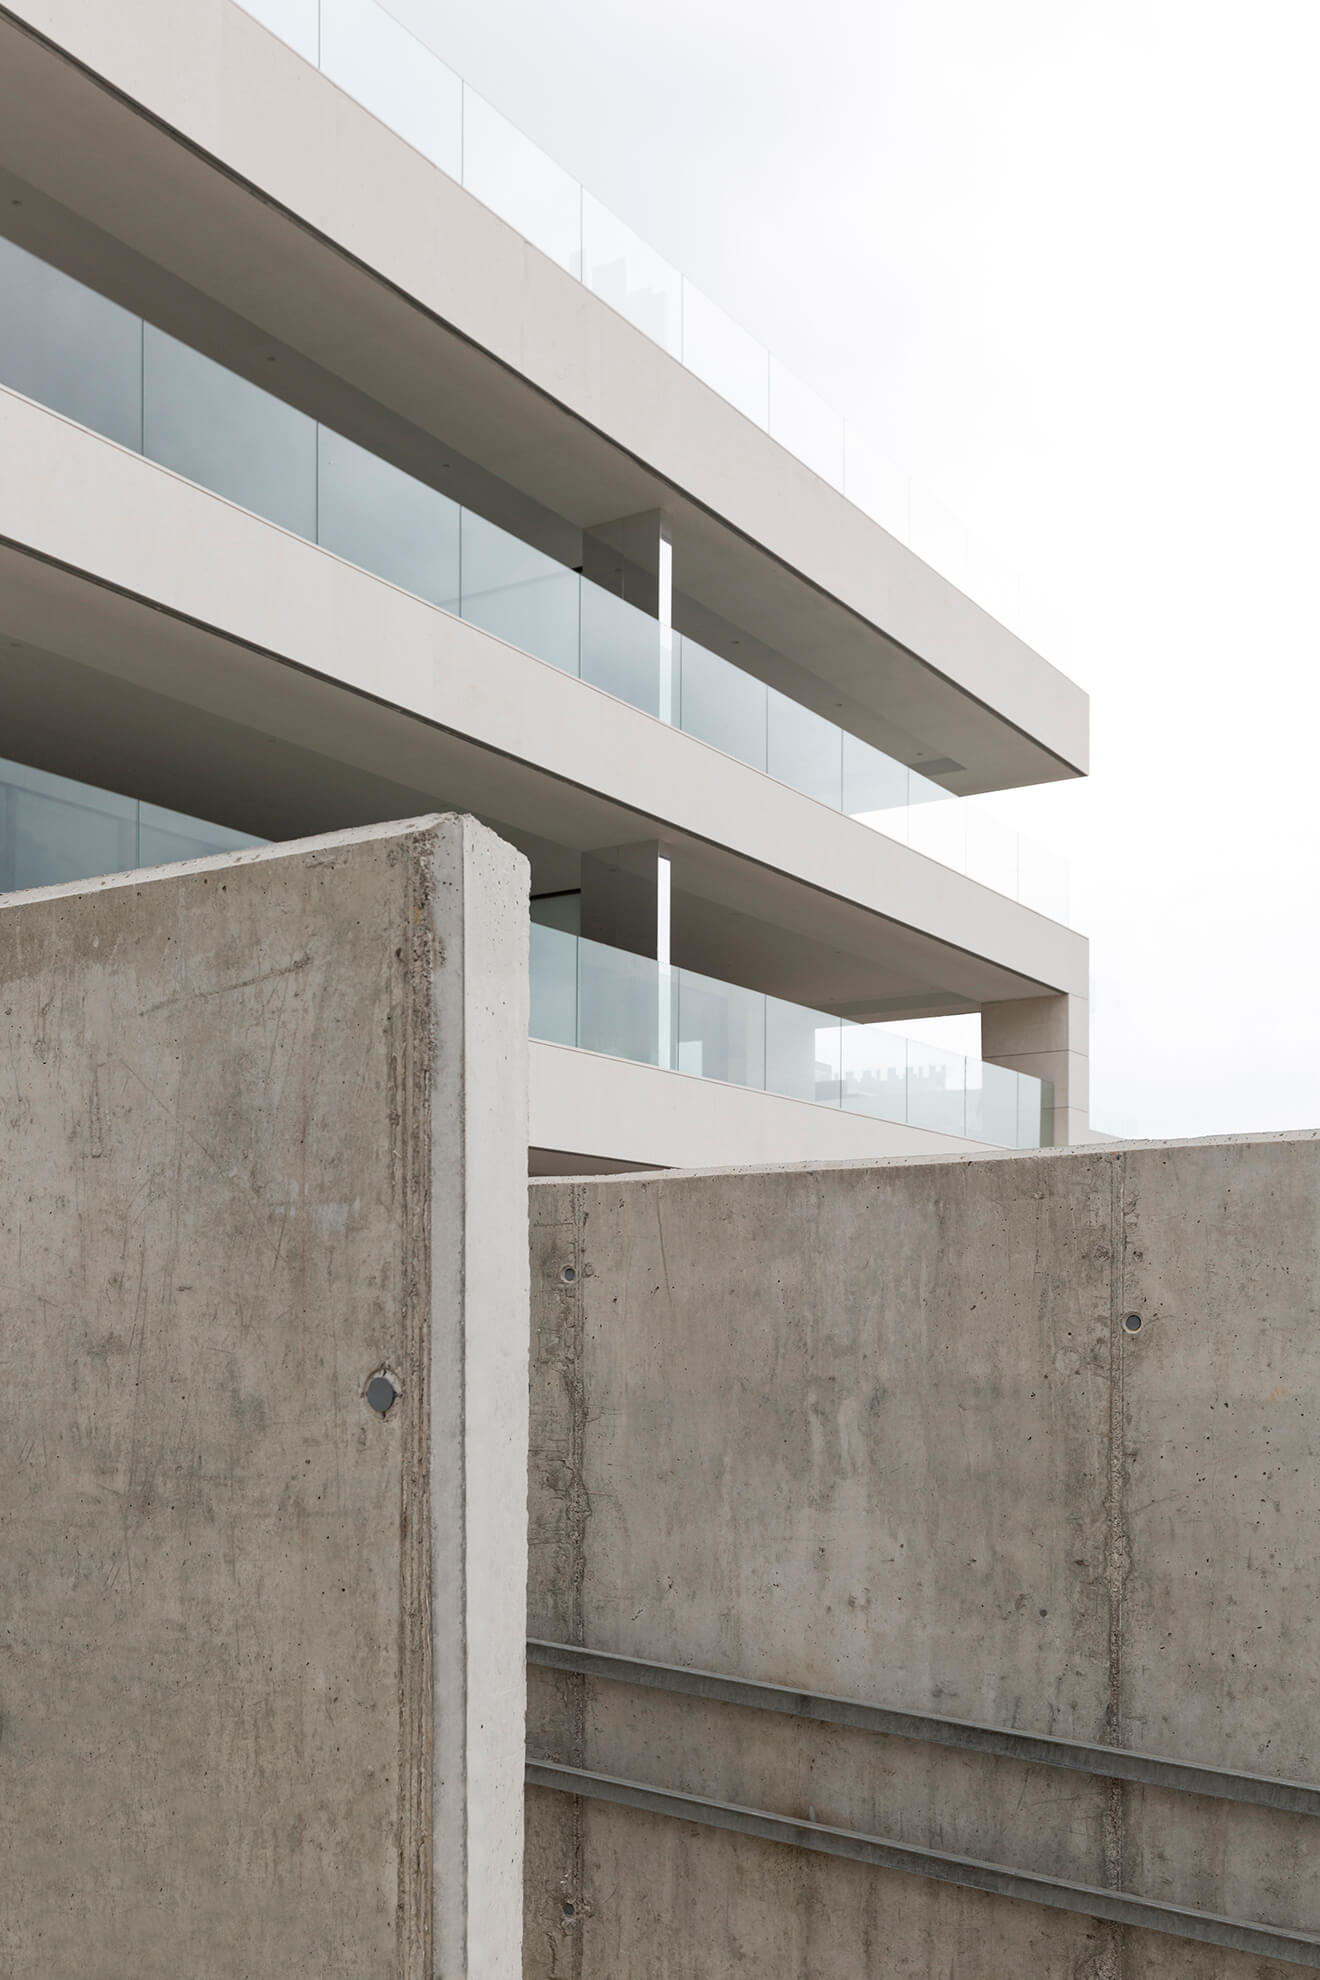 Detail of one of the concrete walls of a common area, and behind, one of the buildings of the Talamanca residential II